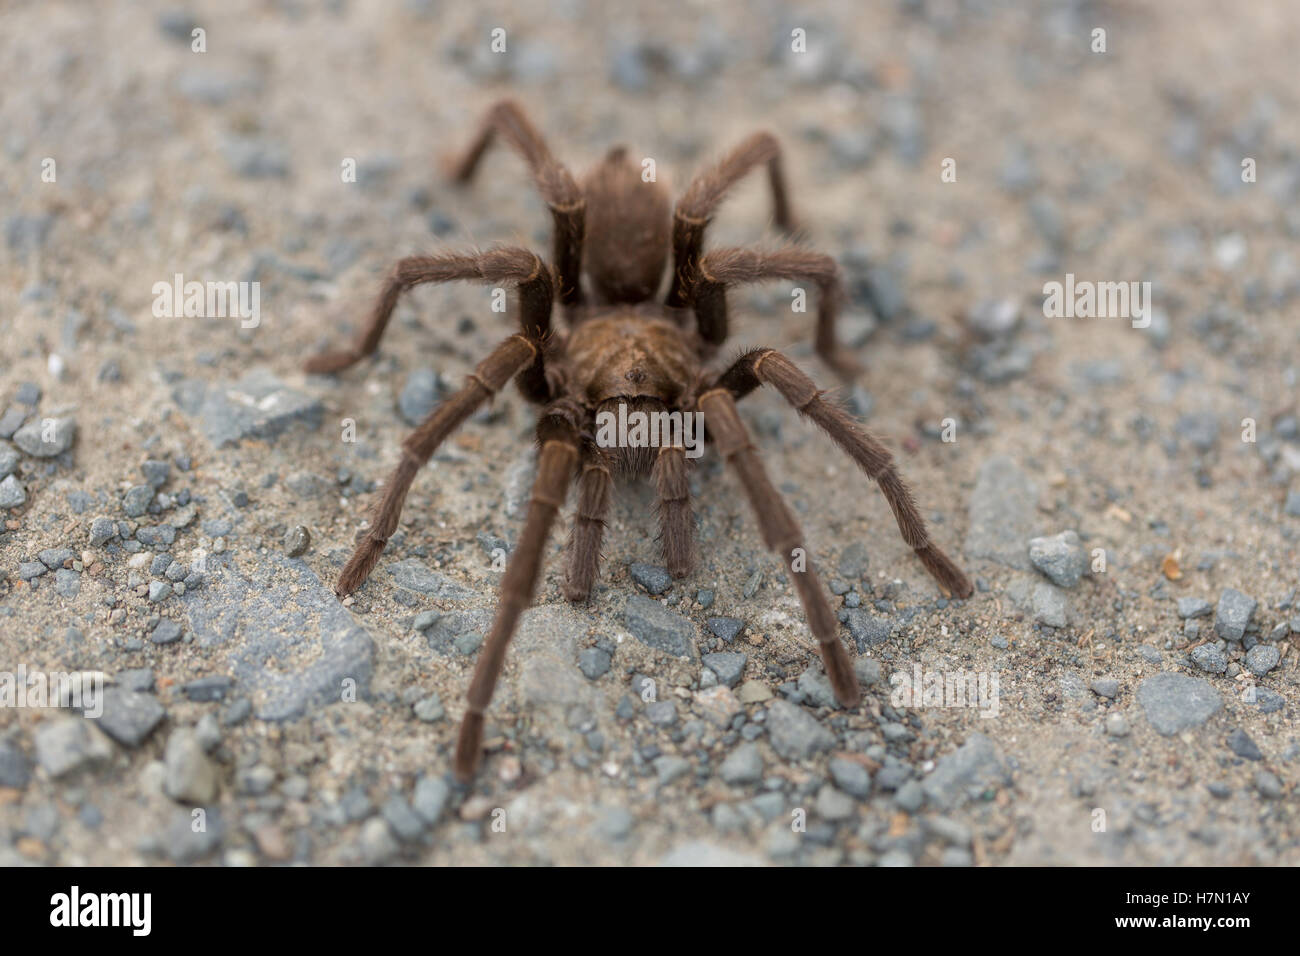 Tarantula - Aphonopelma, Contra Costa County, California, USA, Fall 2016. - Stock Image